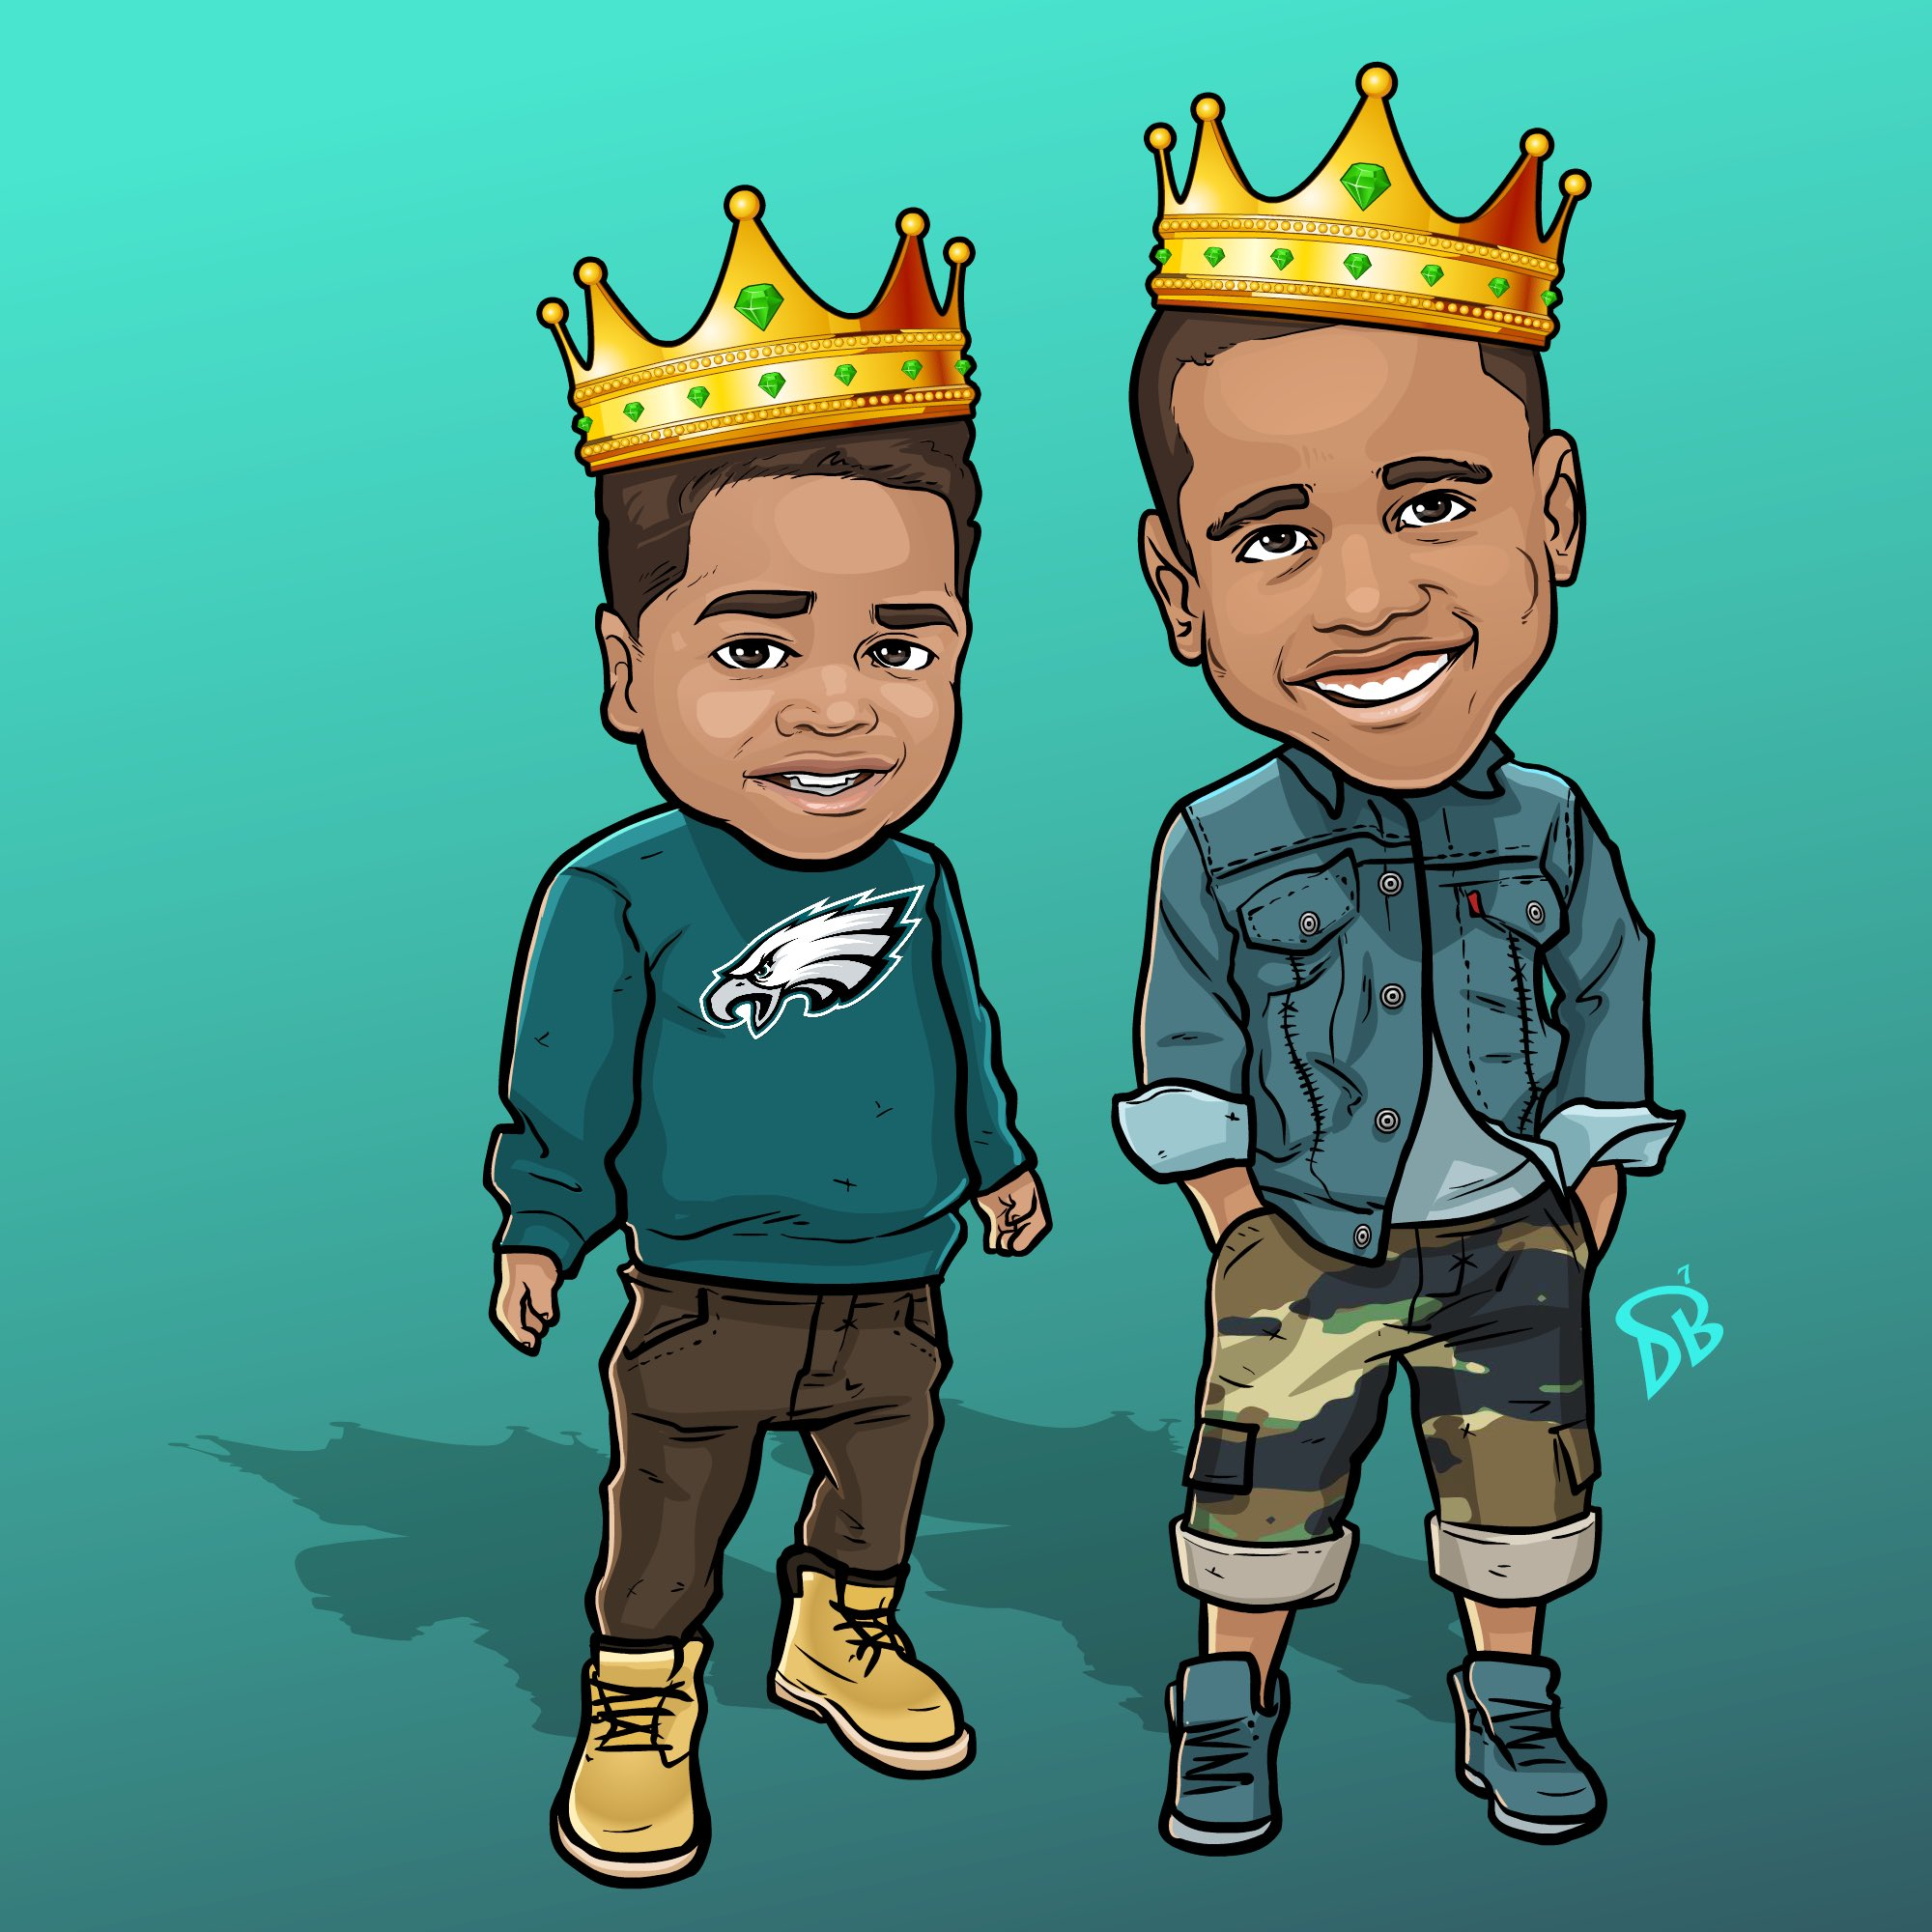 Young Kings https://t.co/X5ygSW3JCi